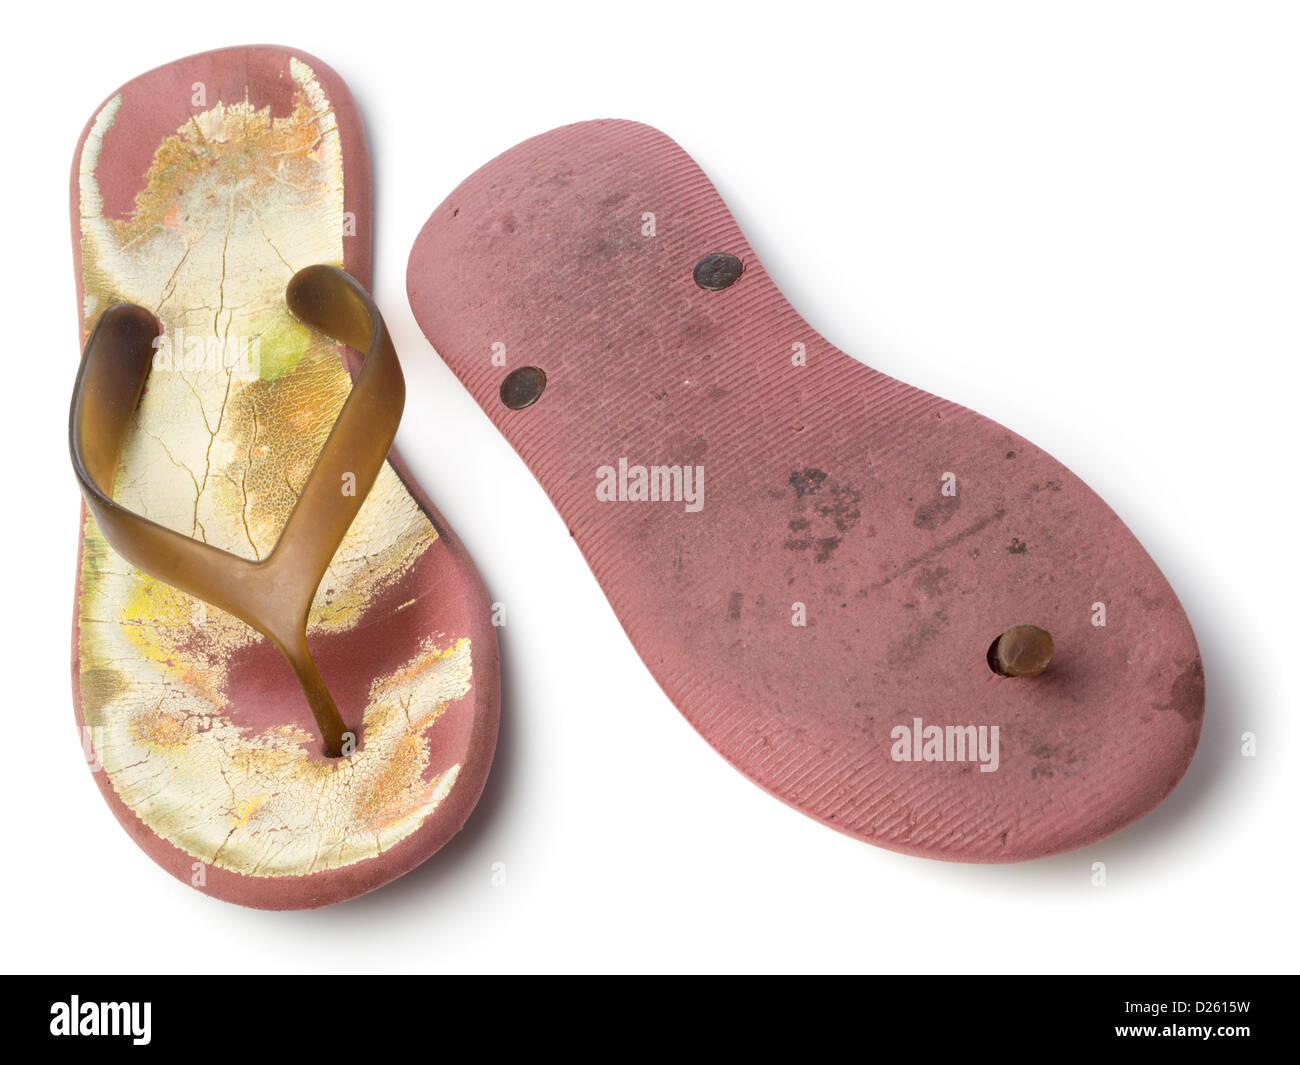 Pair of worn old plastic flip flops isolated on white background - Stock Image